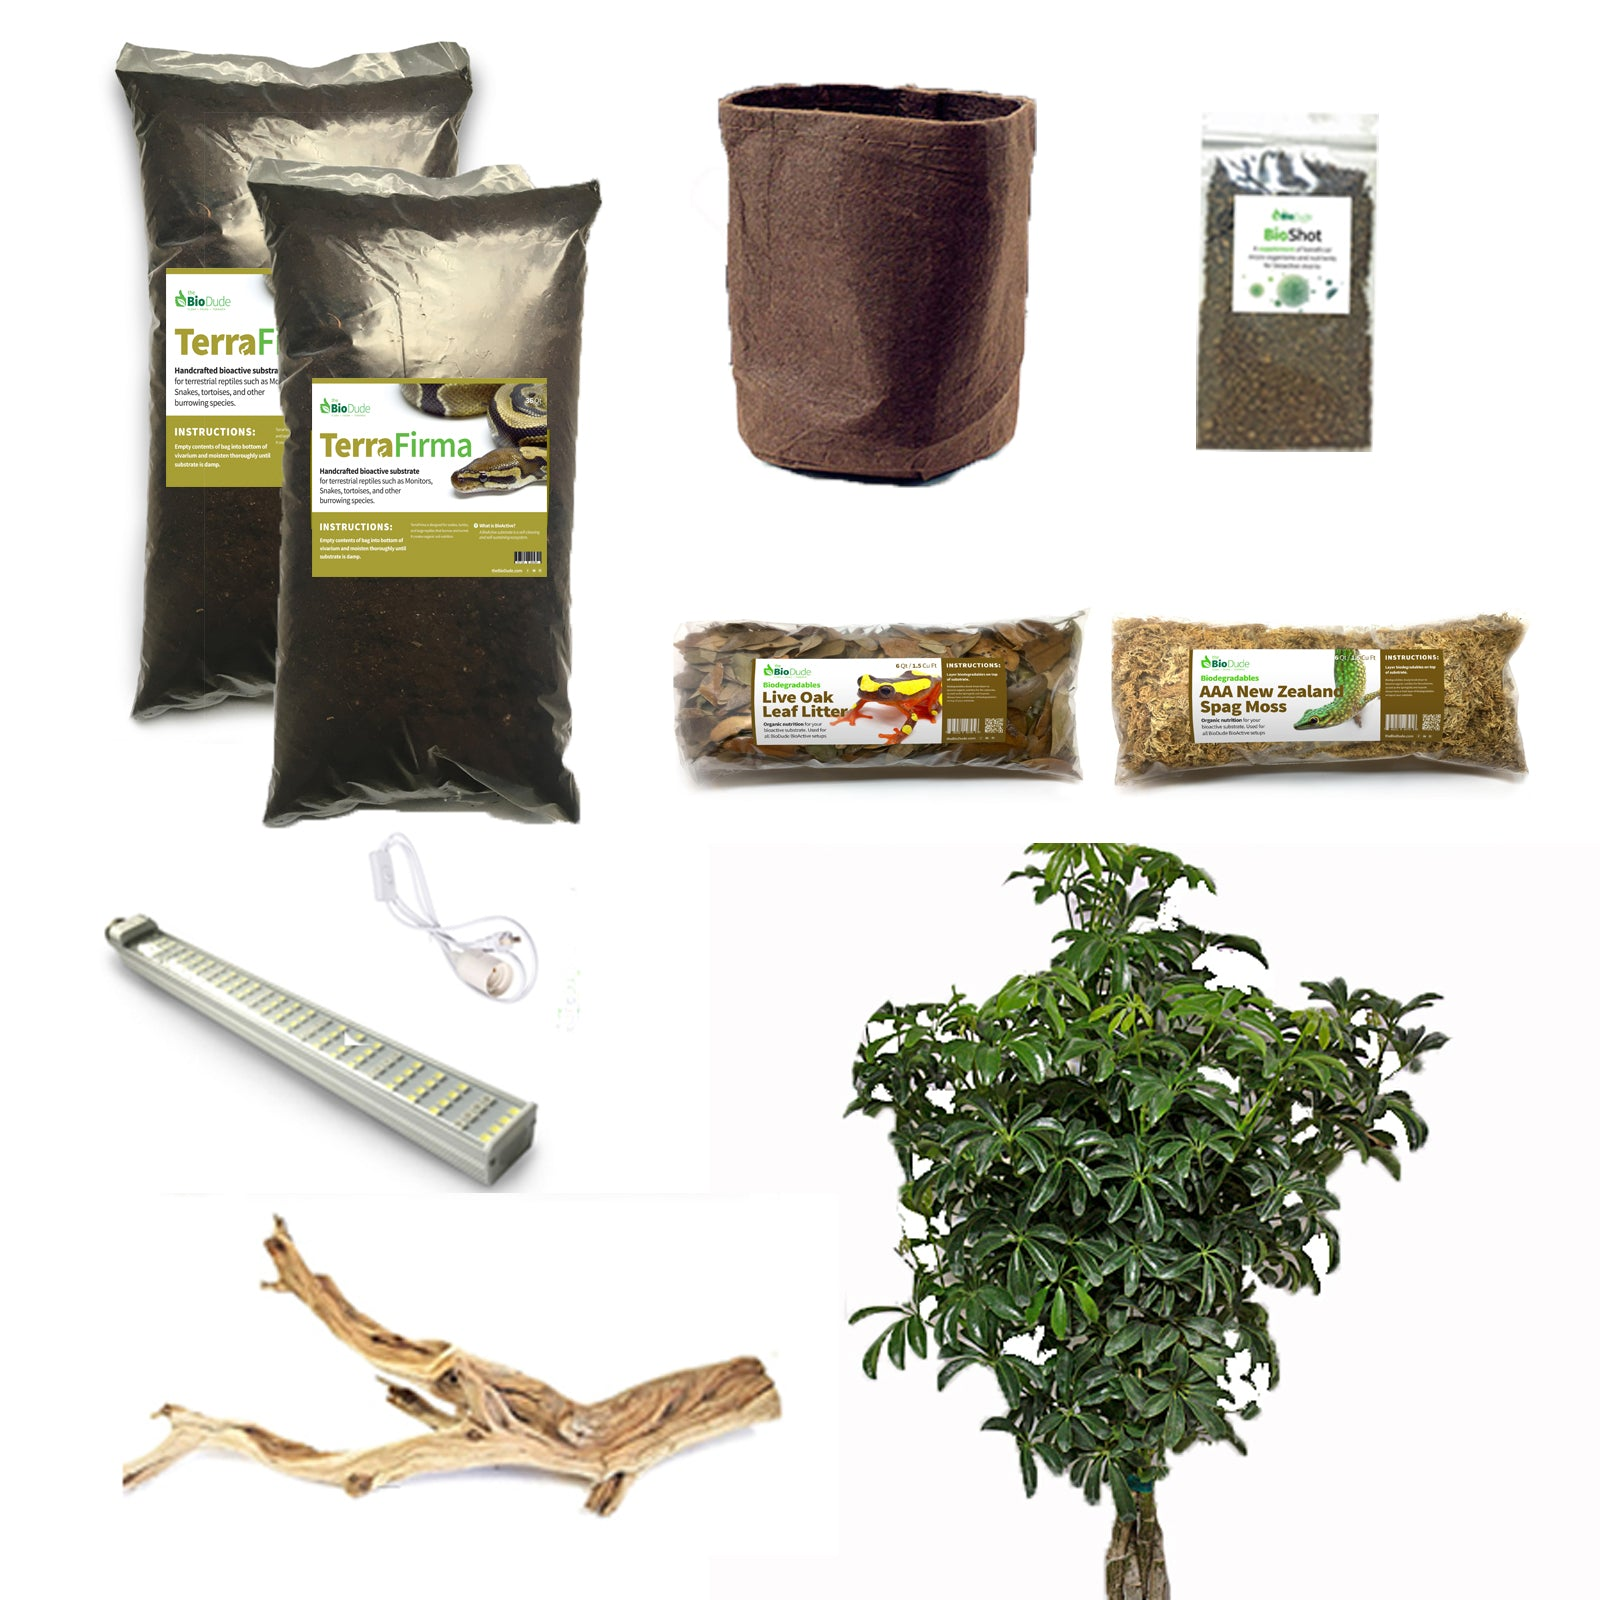 Buy Veiled Chameleon Bioactive Kit At The Bio Dude For Only 229 95